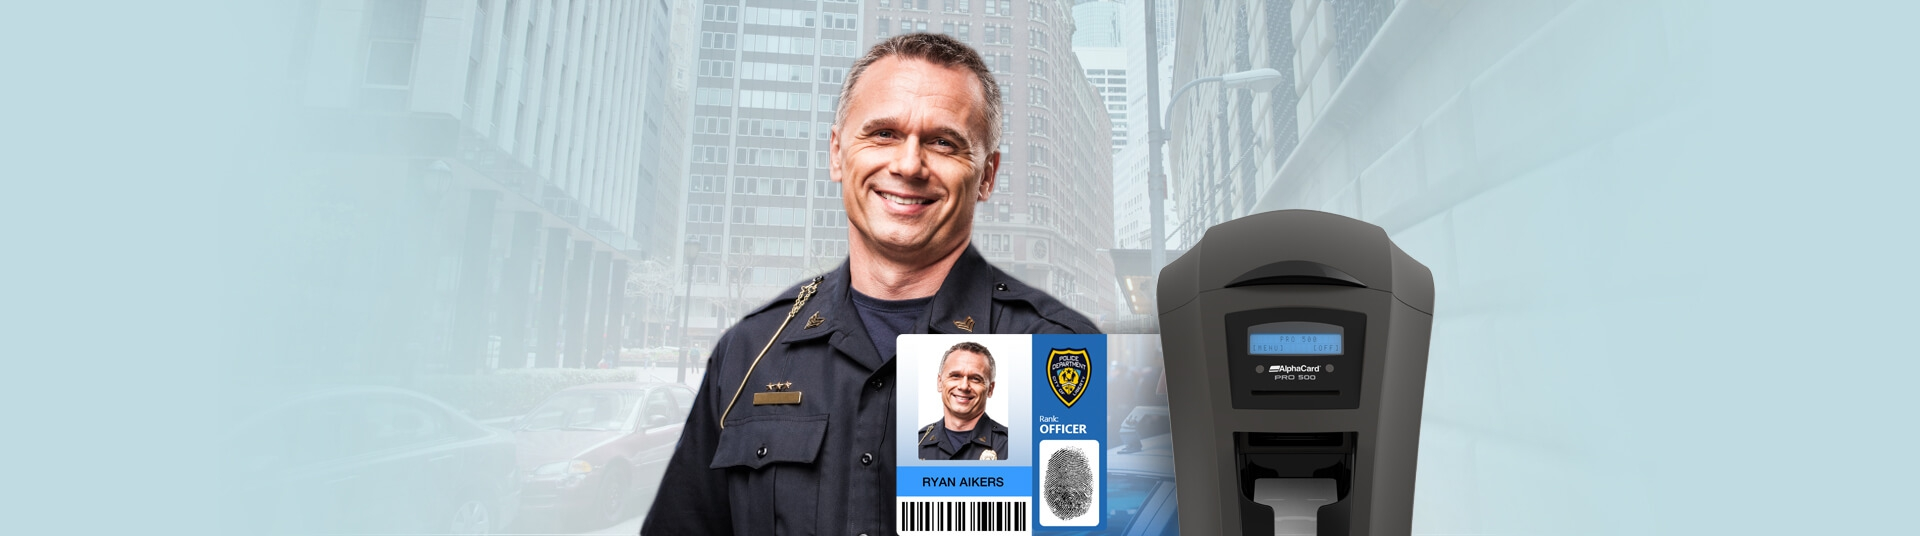 Police ID Cards